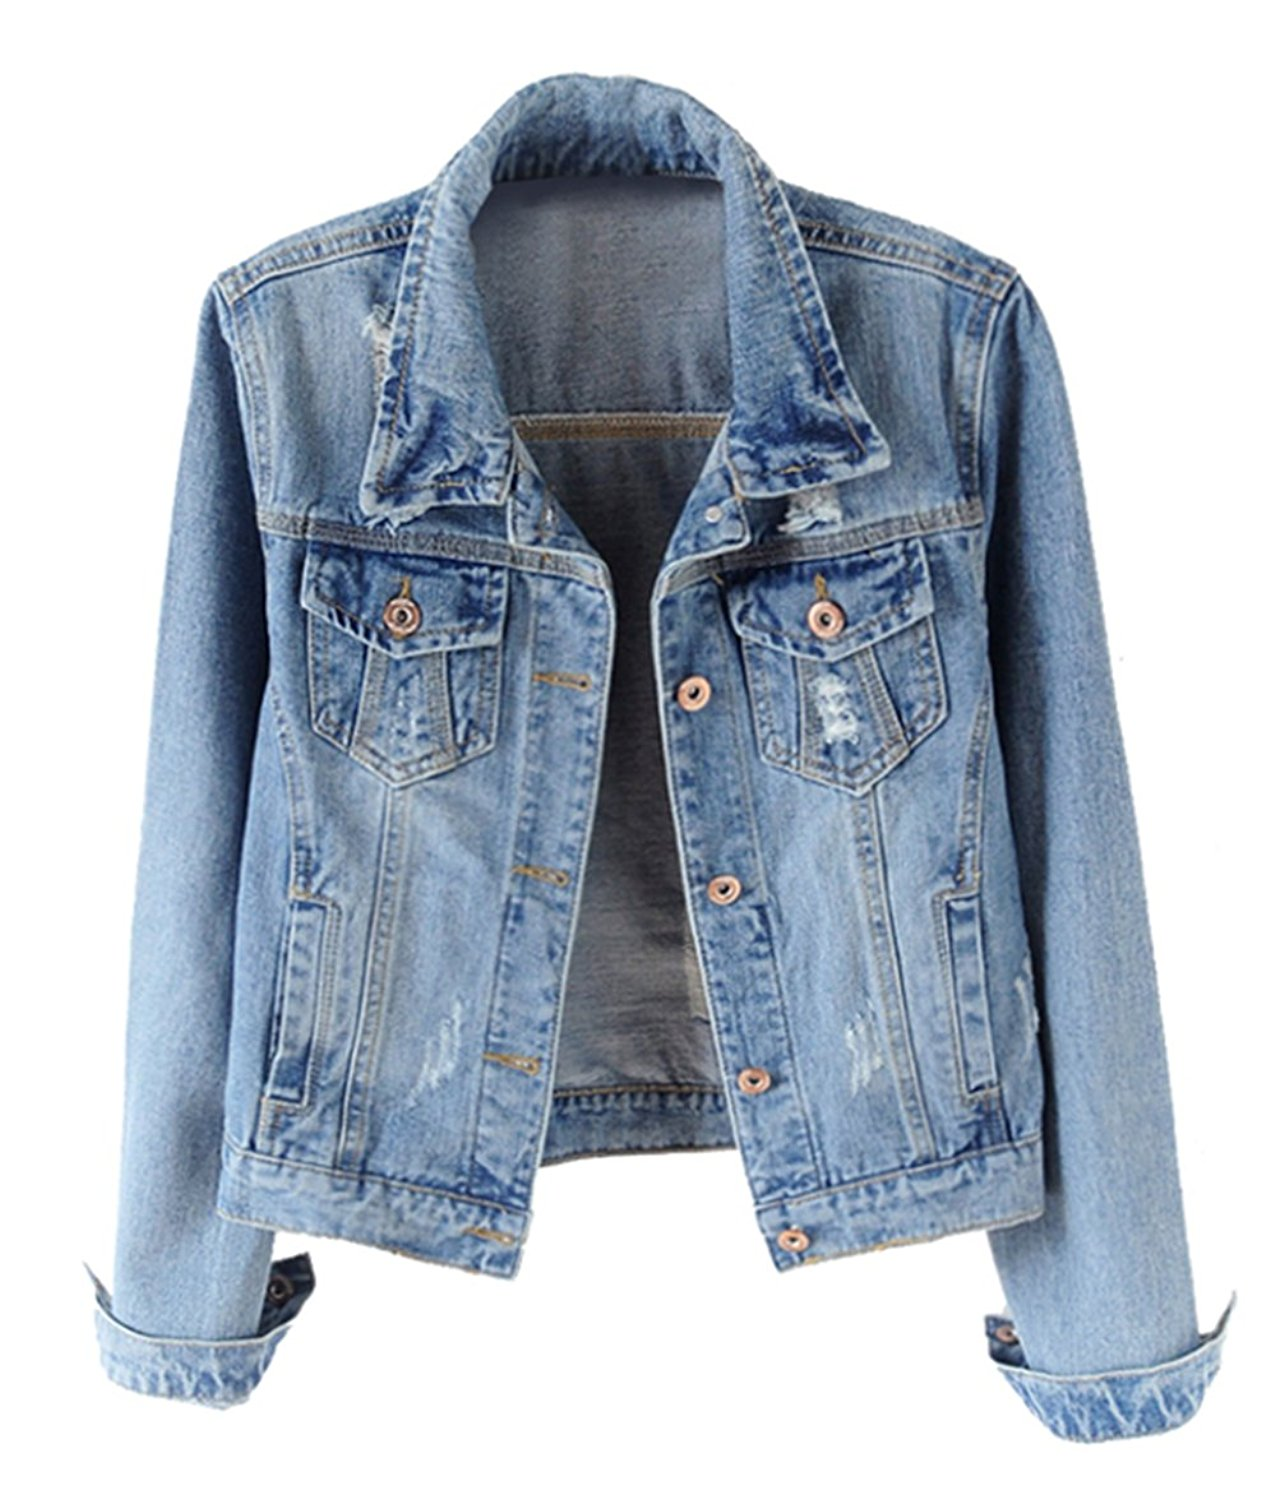 fe62f24eb09dd Get Quotations · Trendy XU Spring Women Vintage Slim Fit Denim Coat  Destroyed Cropped Jeans Jacket